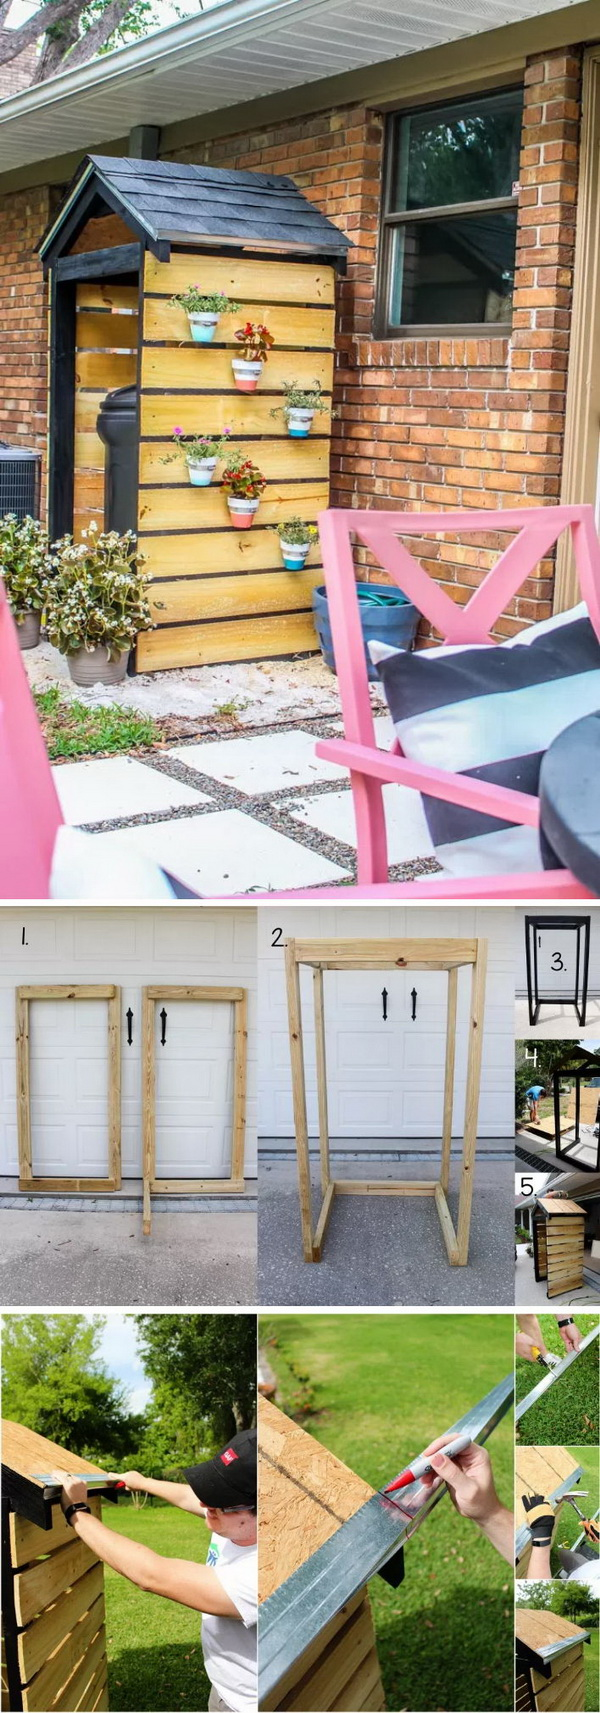 Build An Beautiful Trash Can Shed for Curb Appeal.